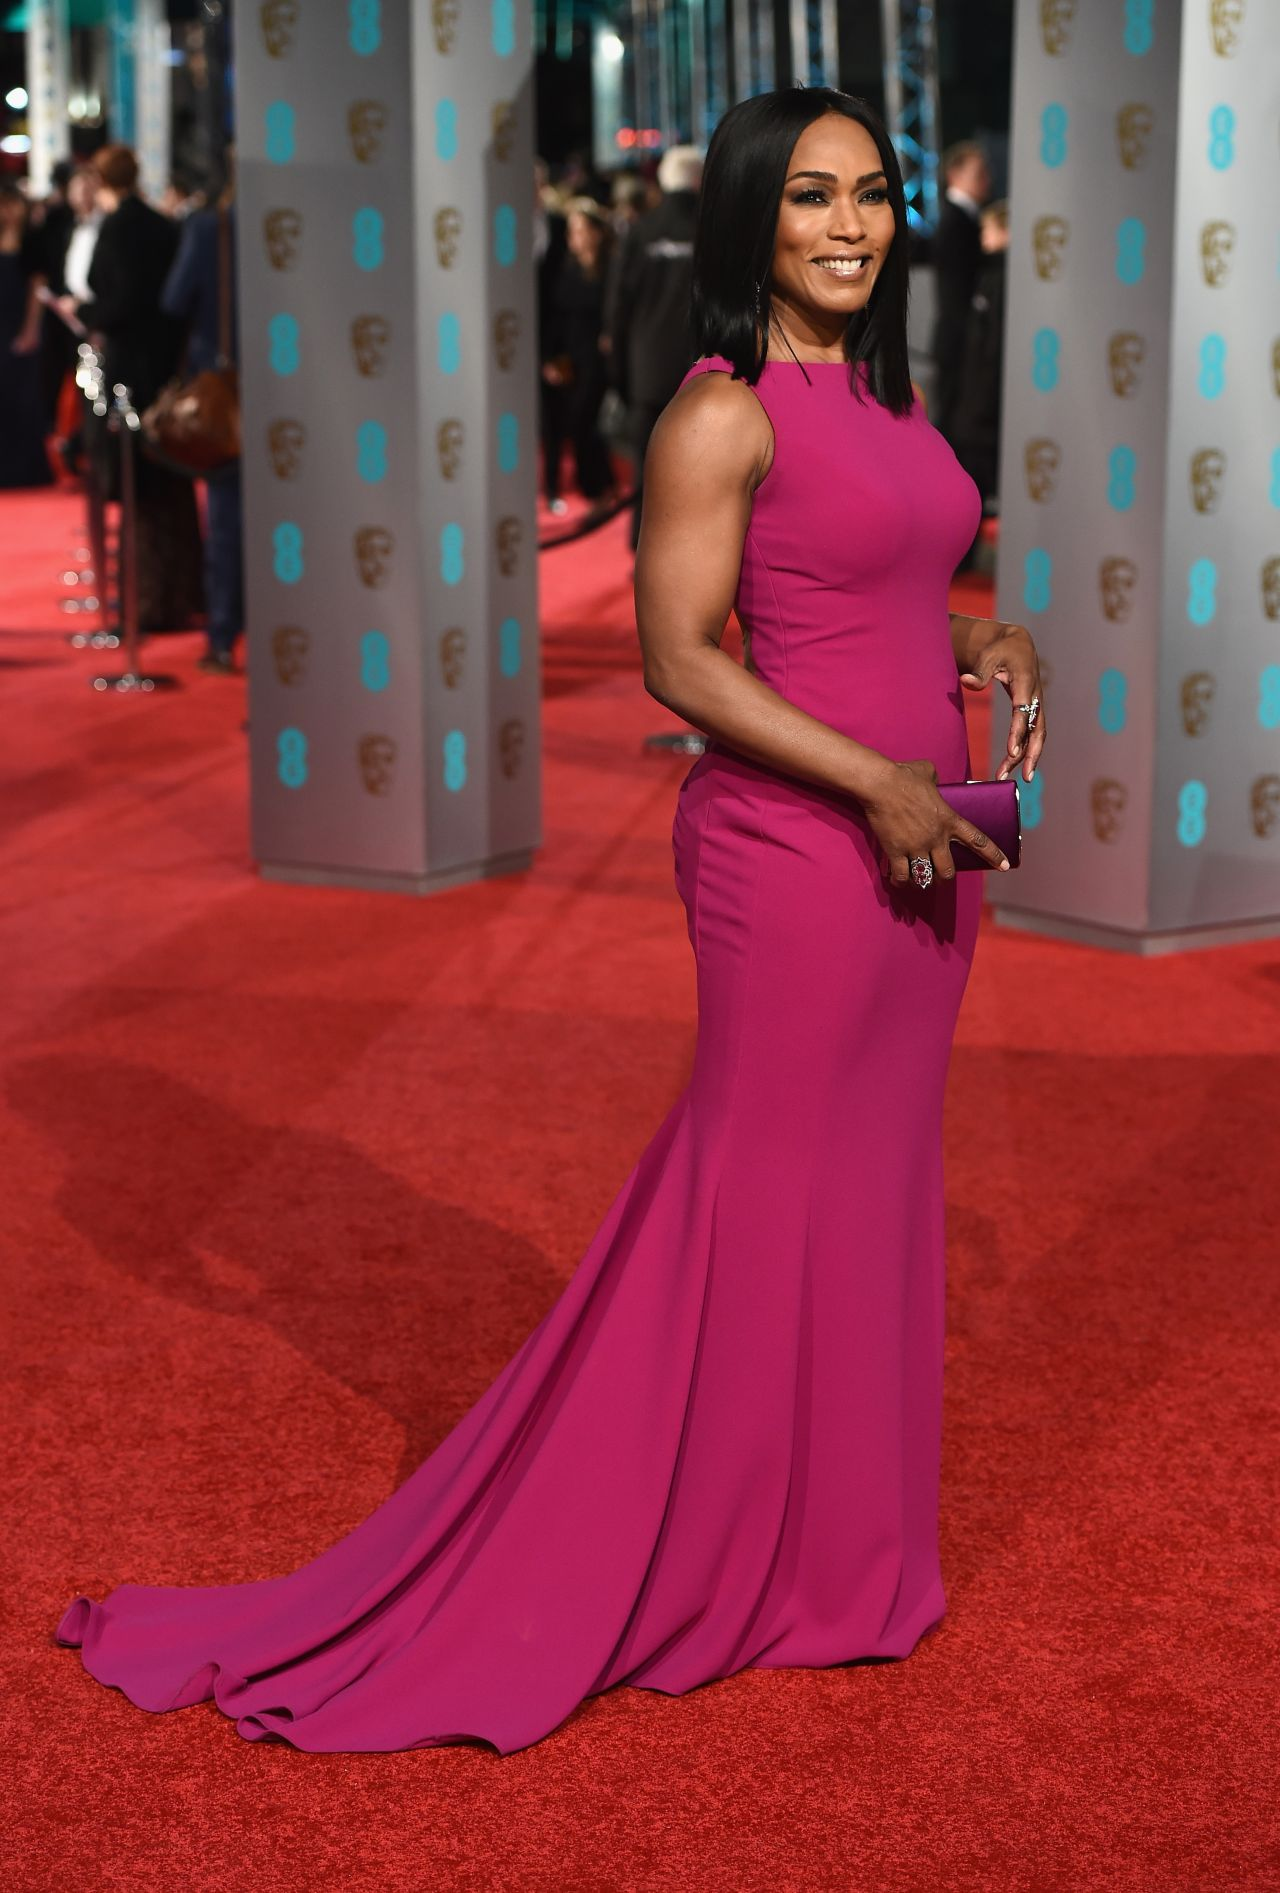 angela-bassett-bafta-film-awards-2016-in-london-4